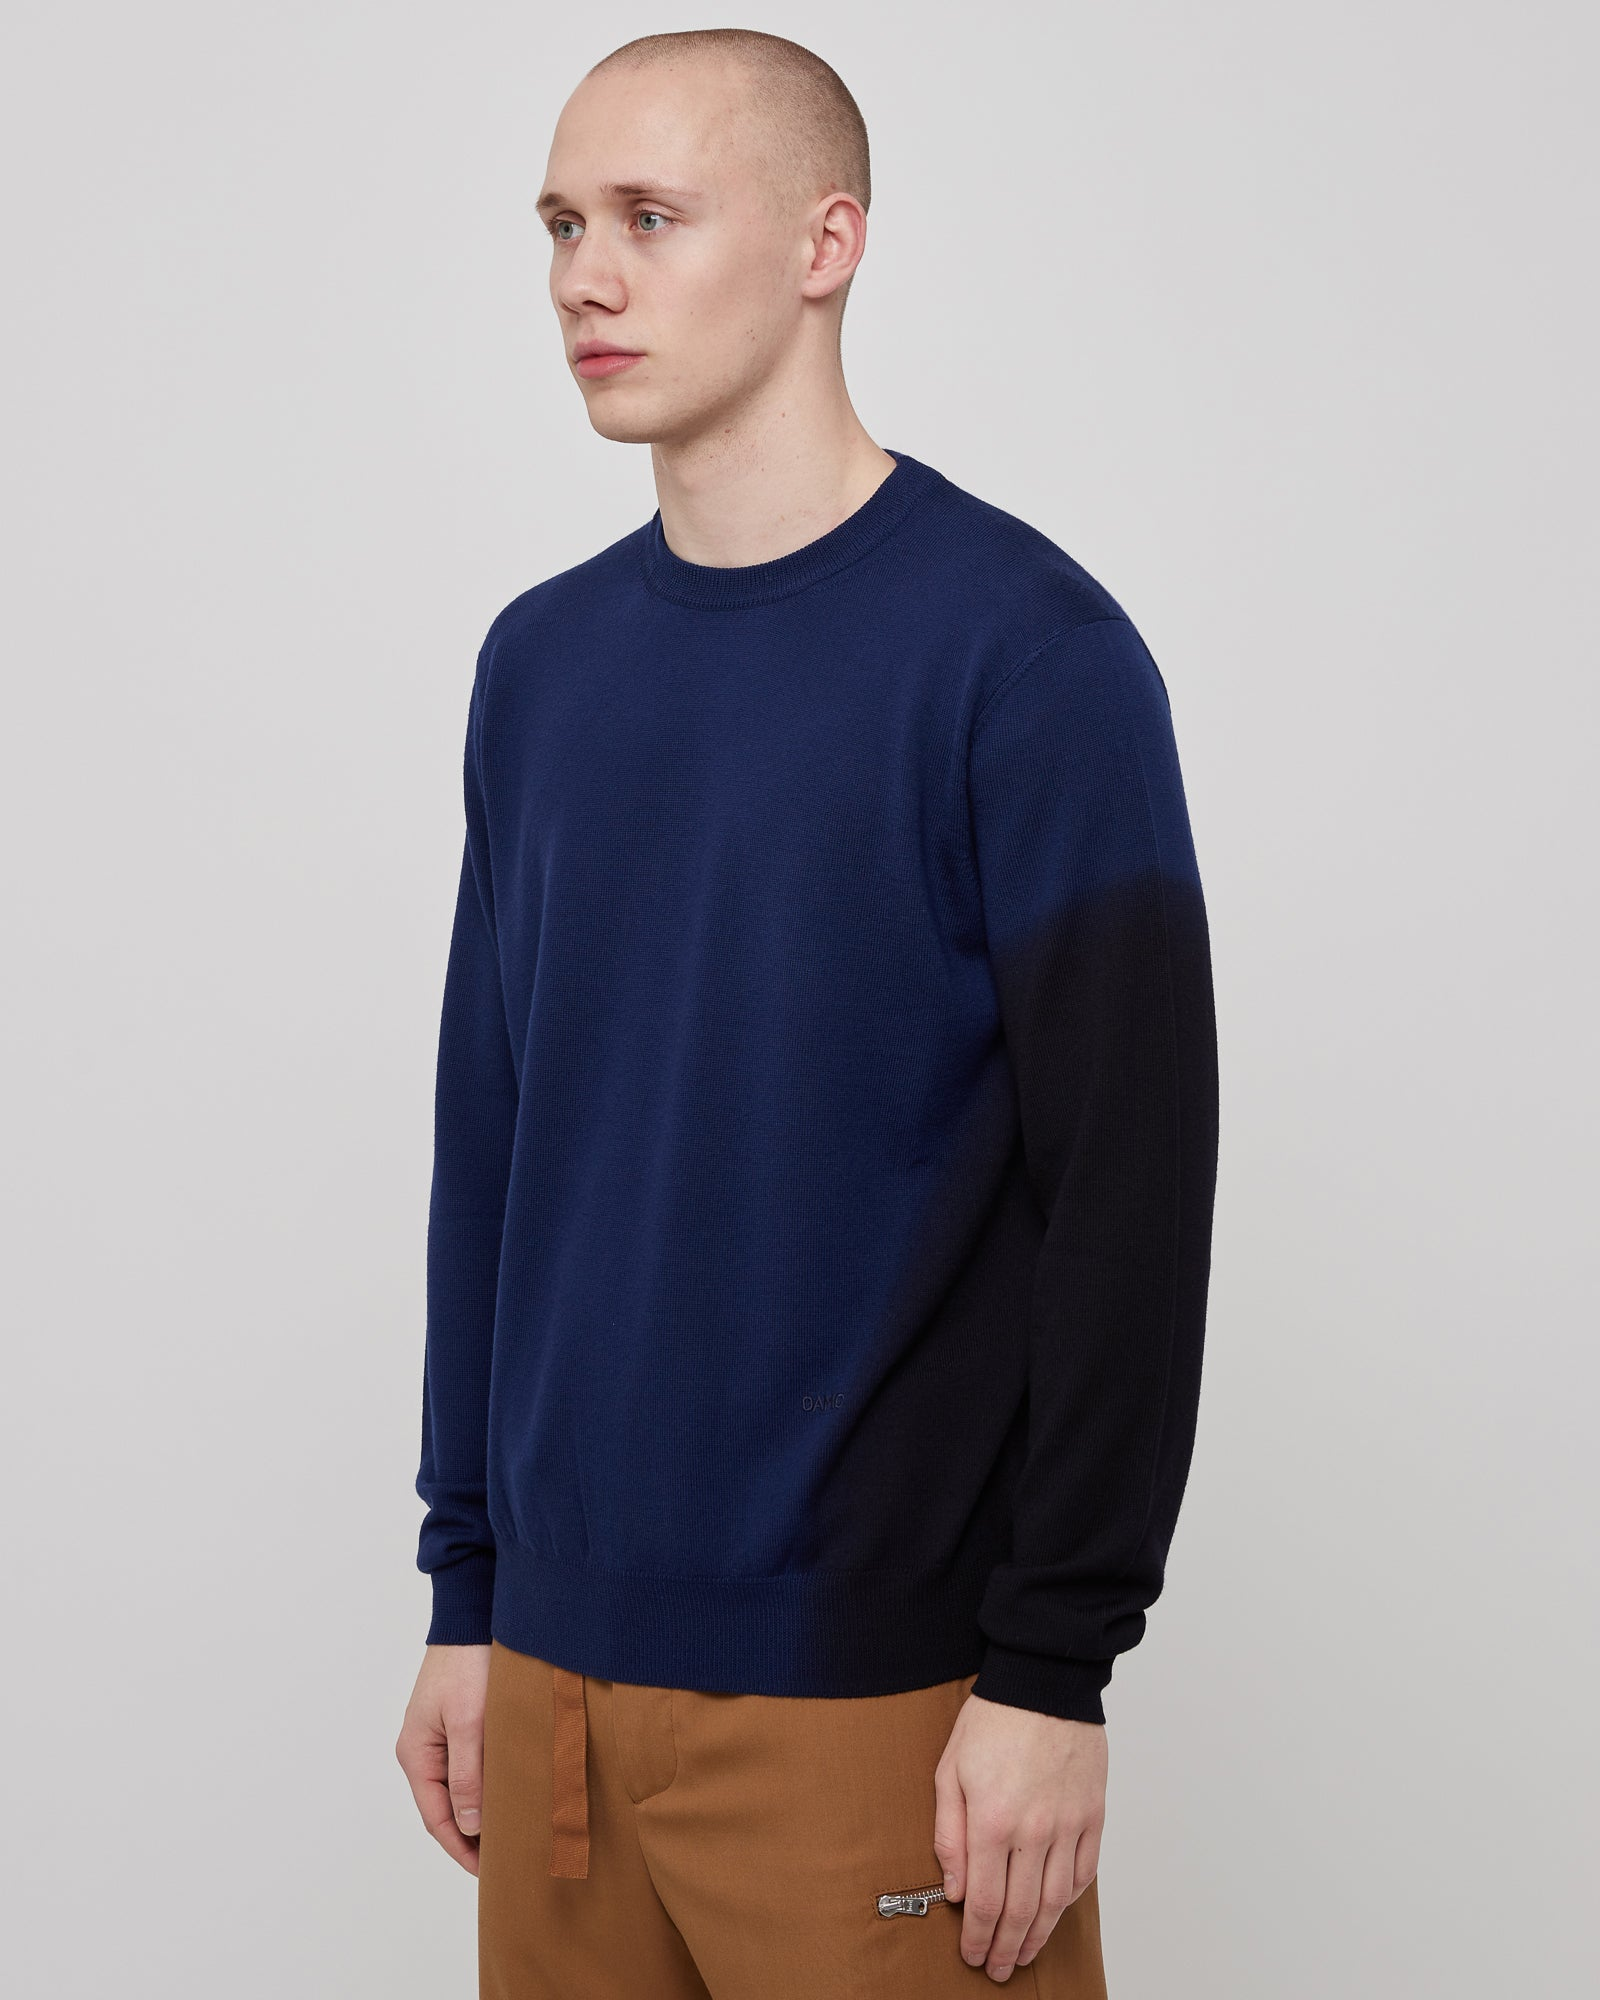 Gradient Crewneck in Factory Blue